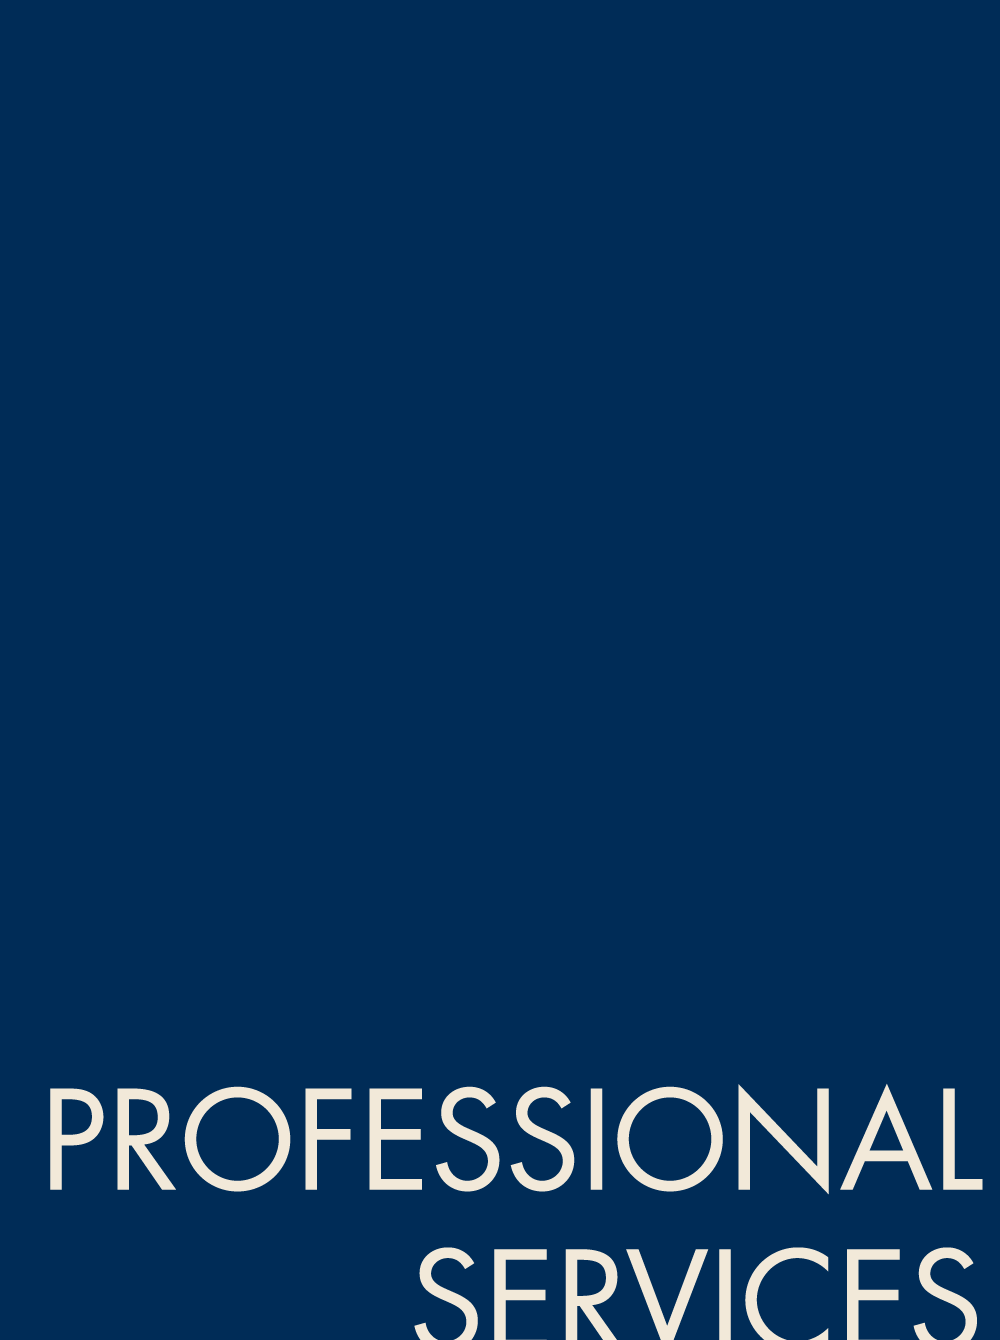 professional_services.png